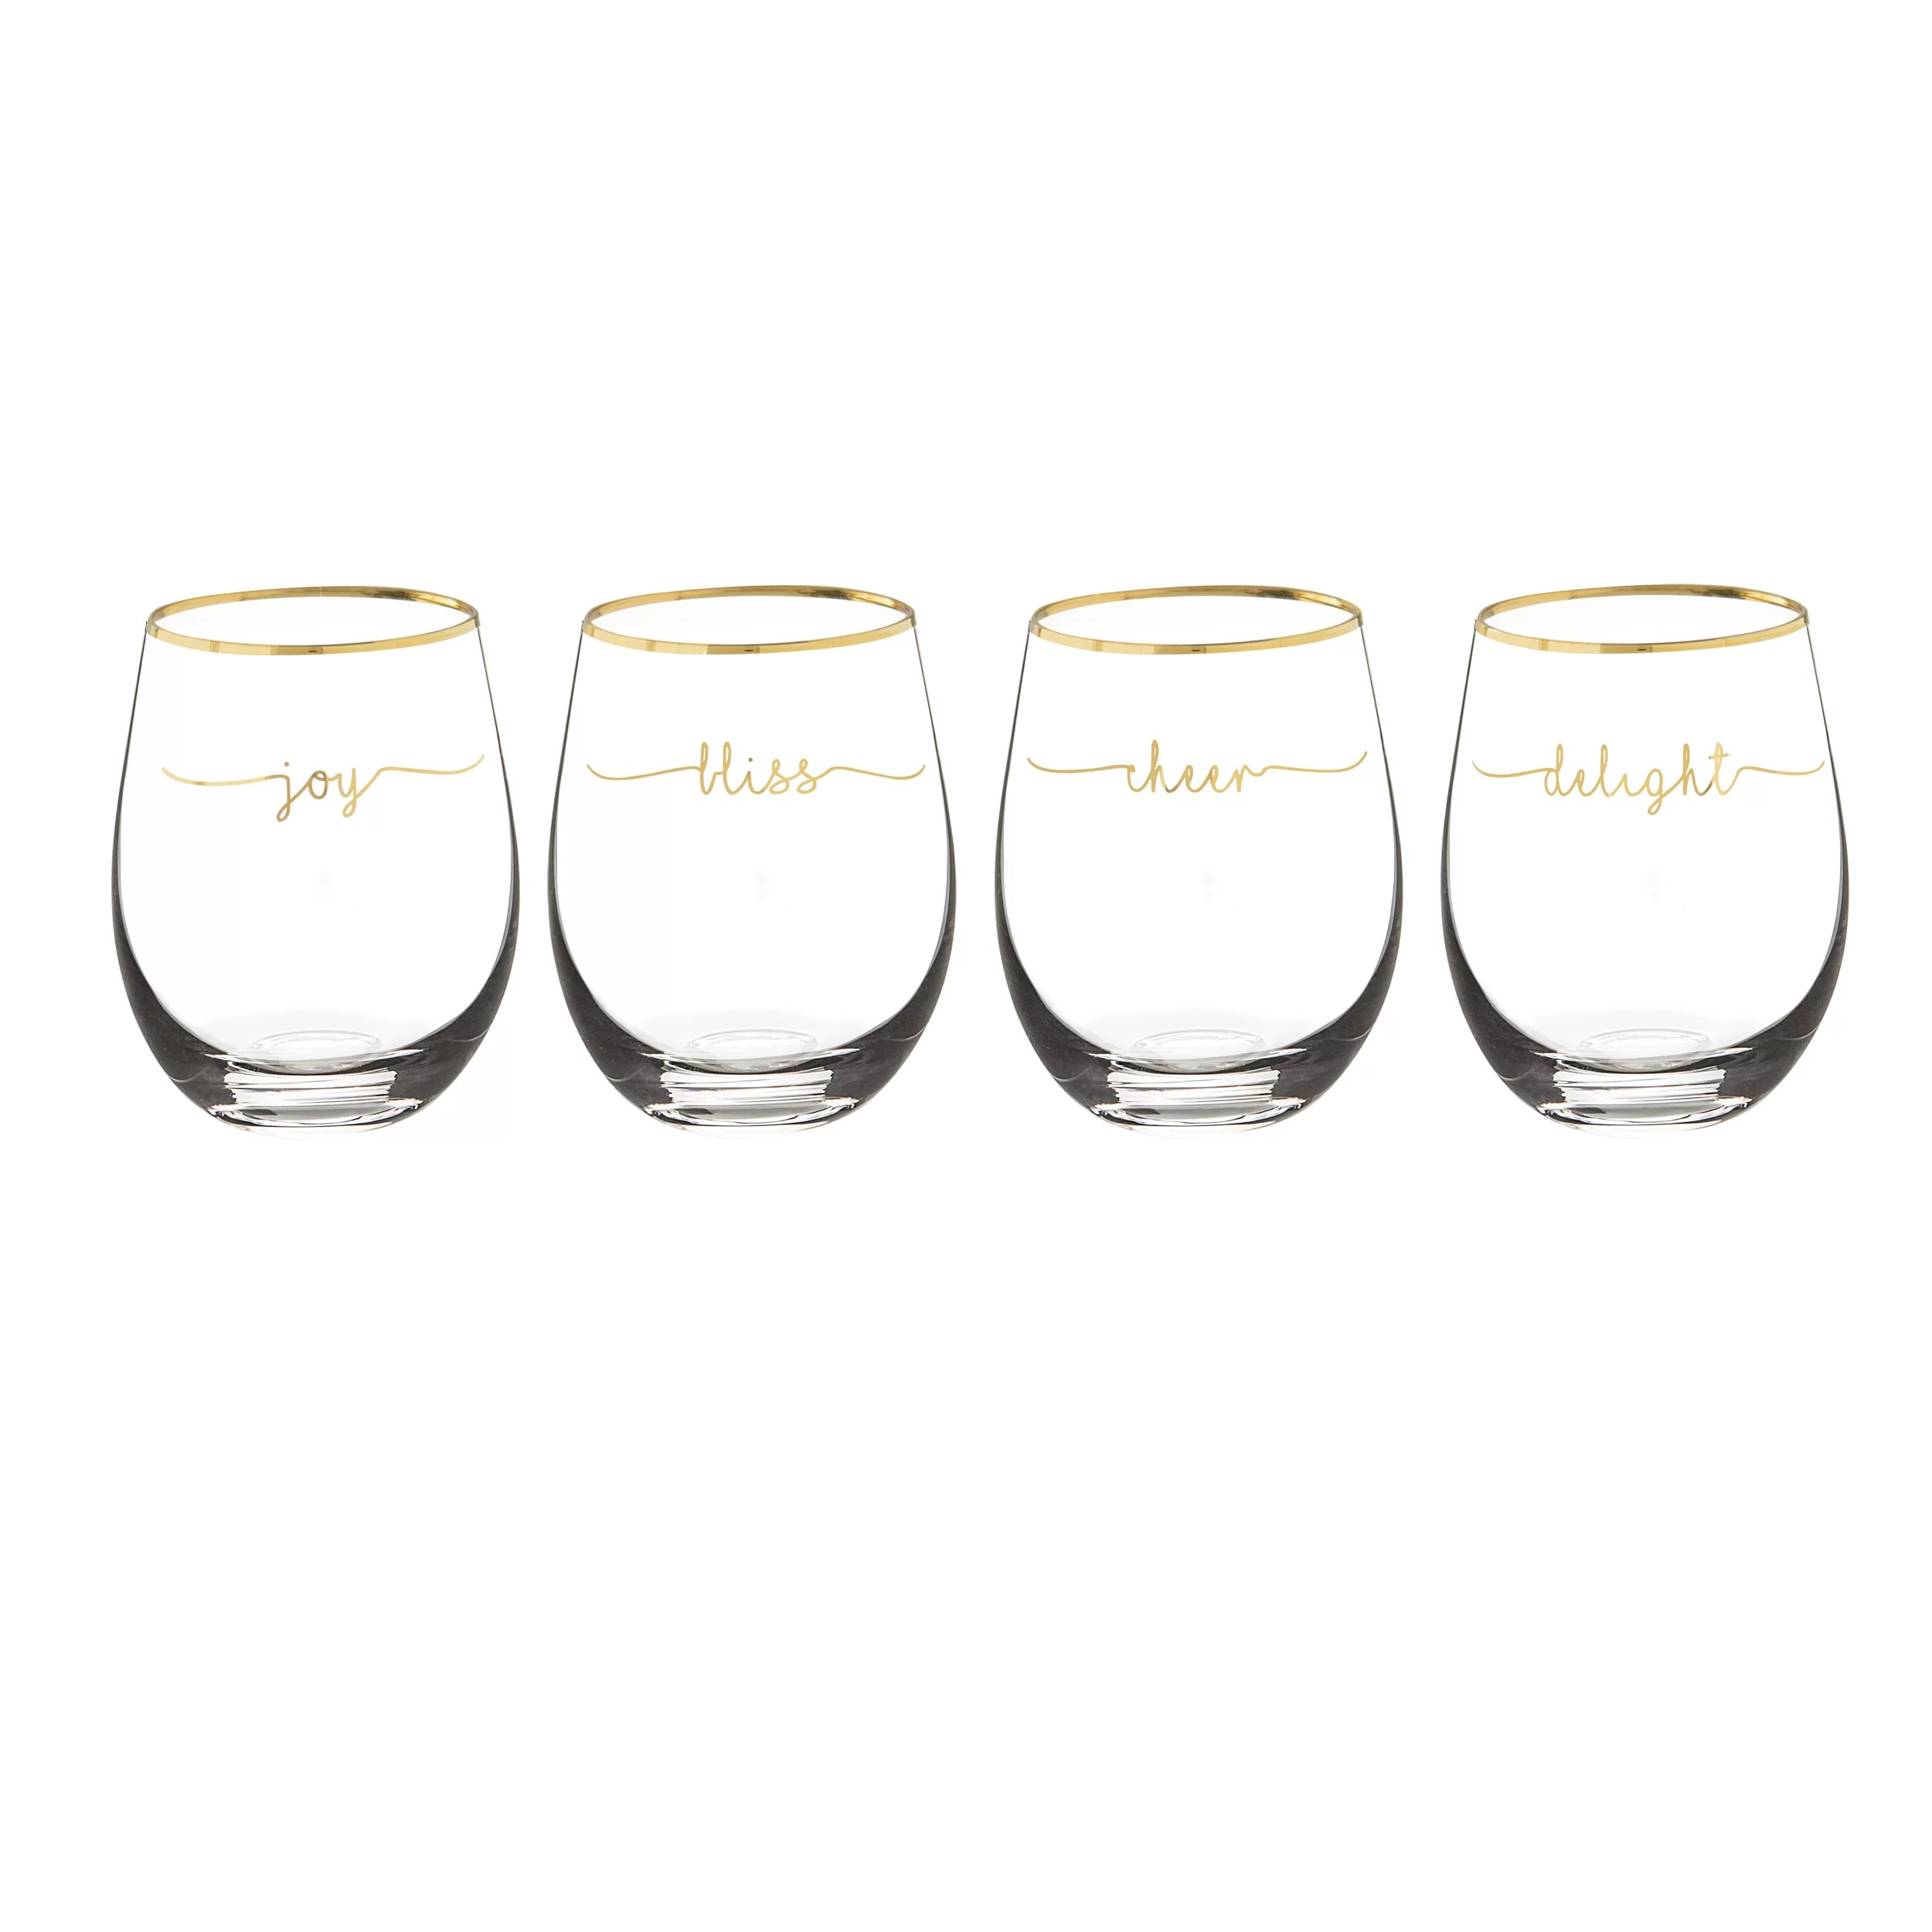 Whiskey Glasses Myer Myers 19 Oz Stemless Wine Glass